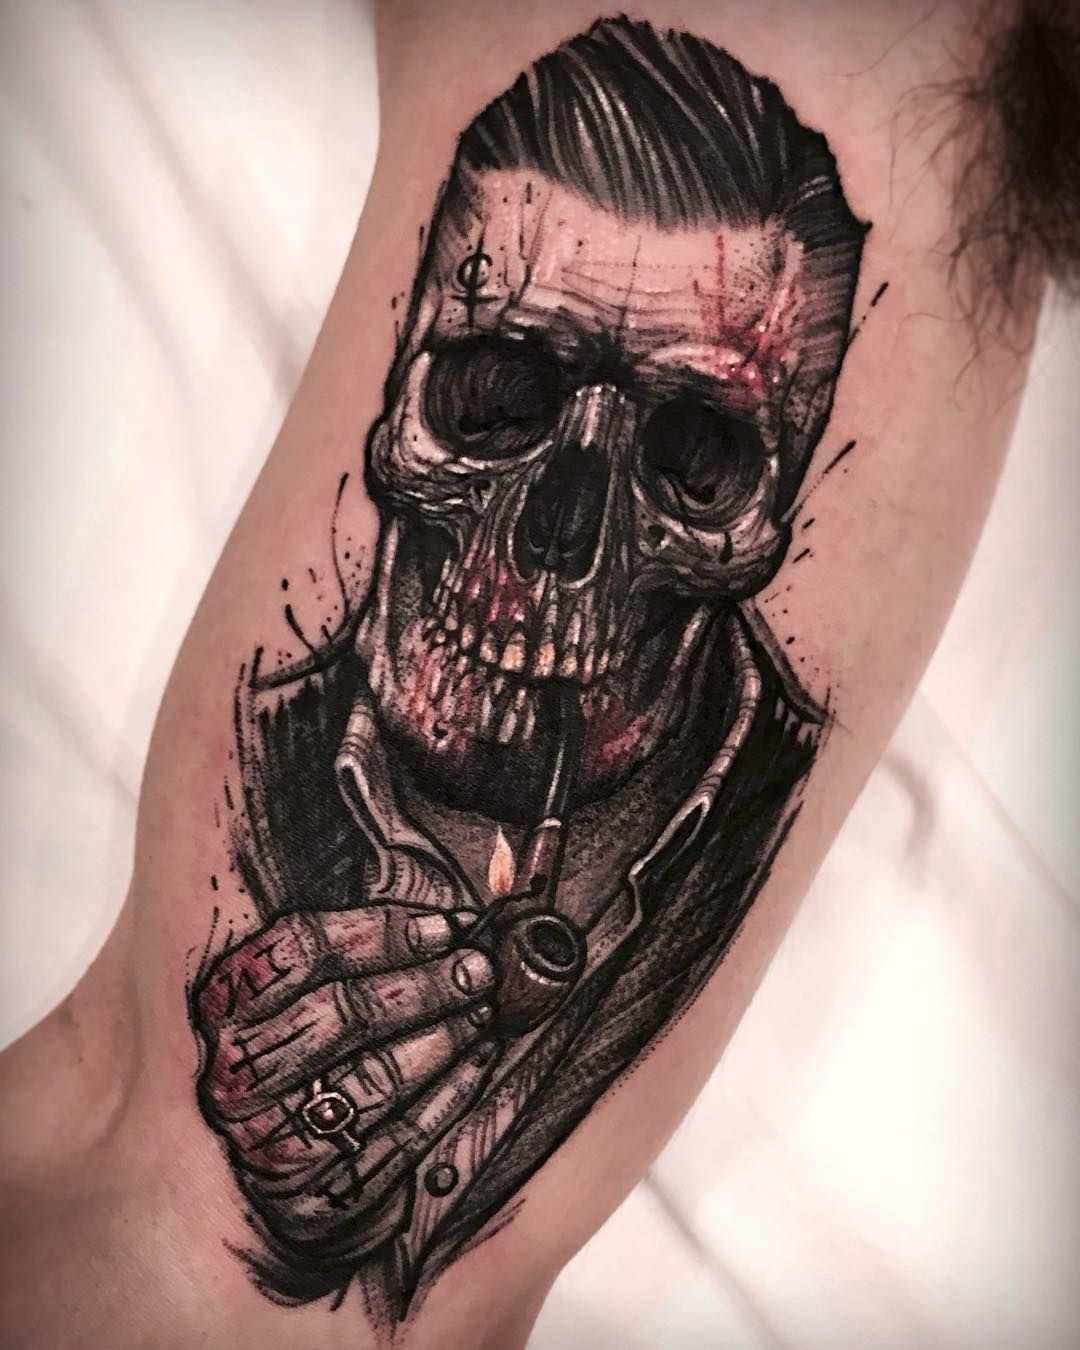 skull gang tattoos on men pinterest tattoo ideen totenk pfe und kunst designs. Black Bedroom Furniture Sets. Home Design Ideas